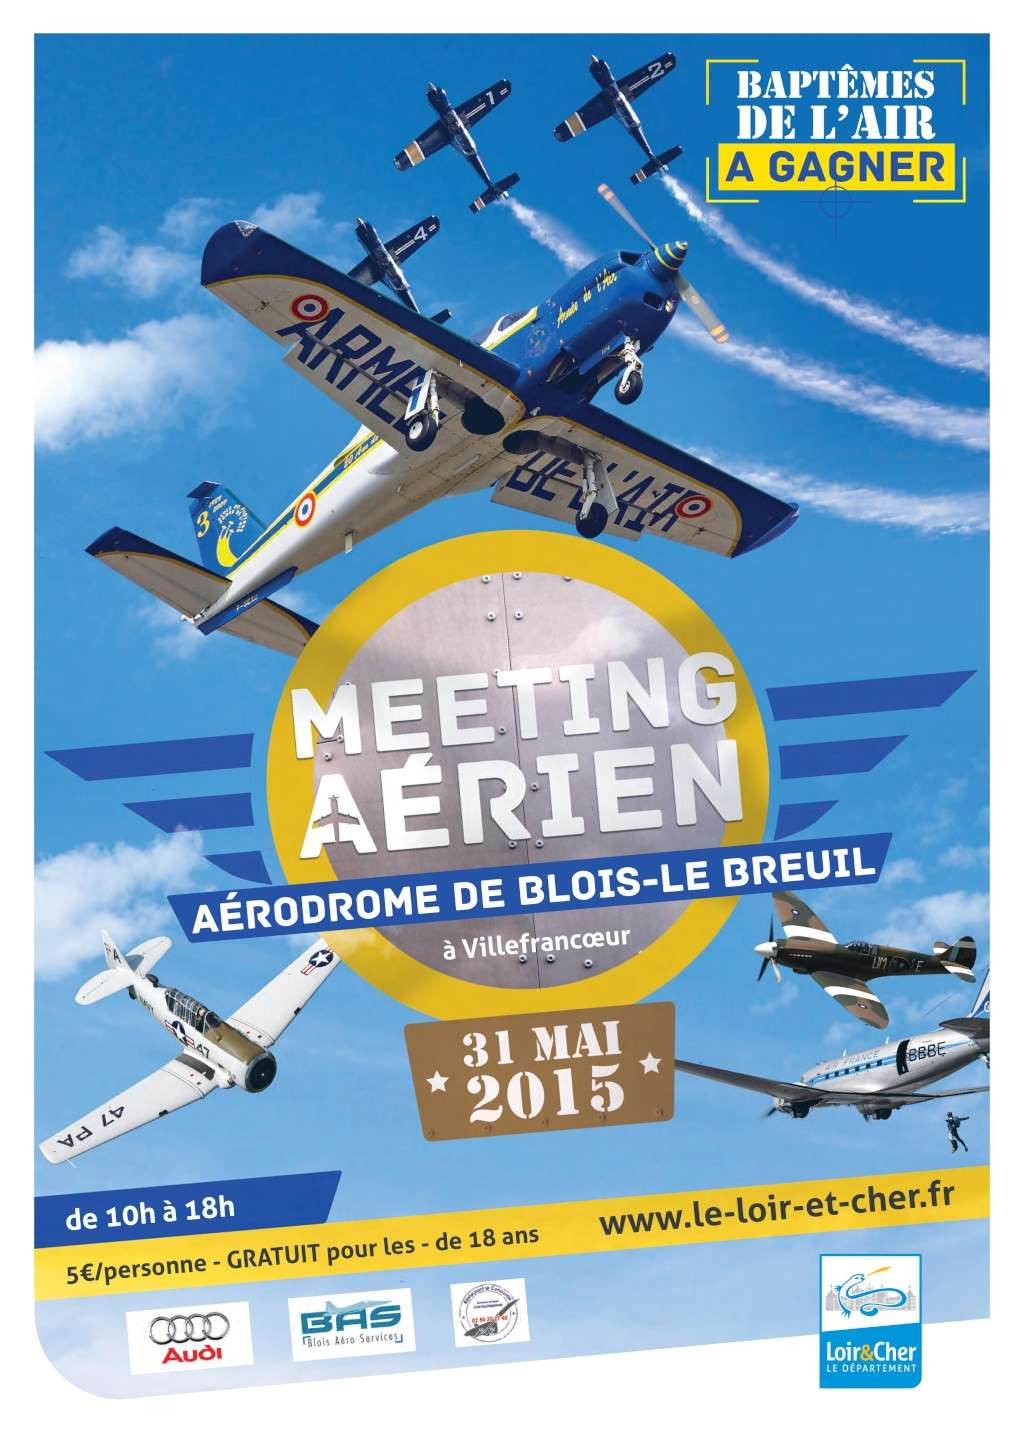 demo warbirds ,Meeting Aérien de Blois 2015, Aerodrome de Blois-le Breui, meeting aerien 2015, Meeting Aérien de Blois